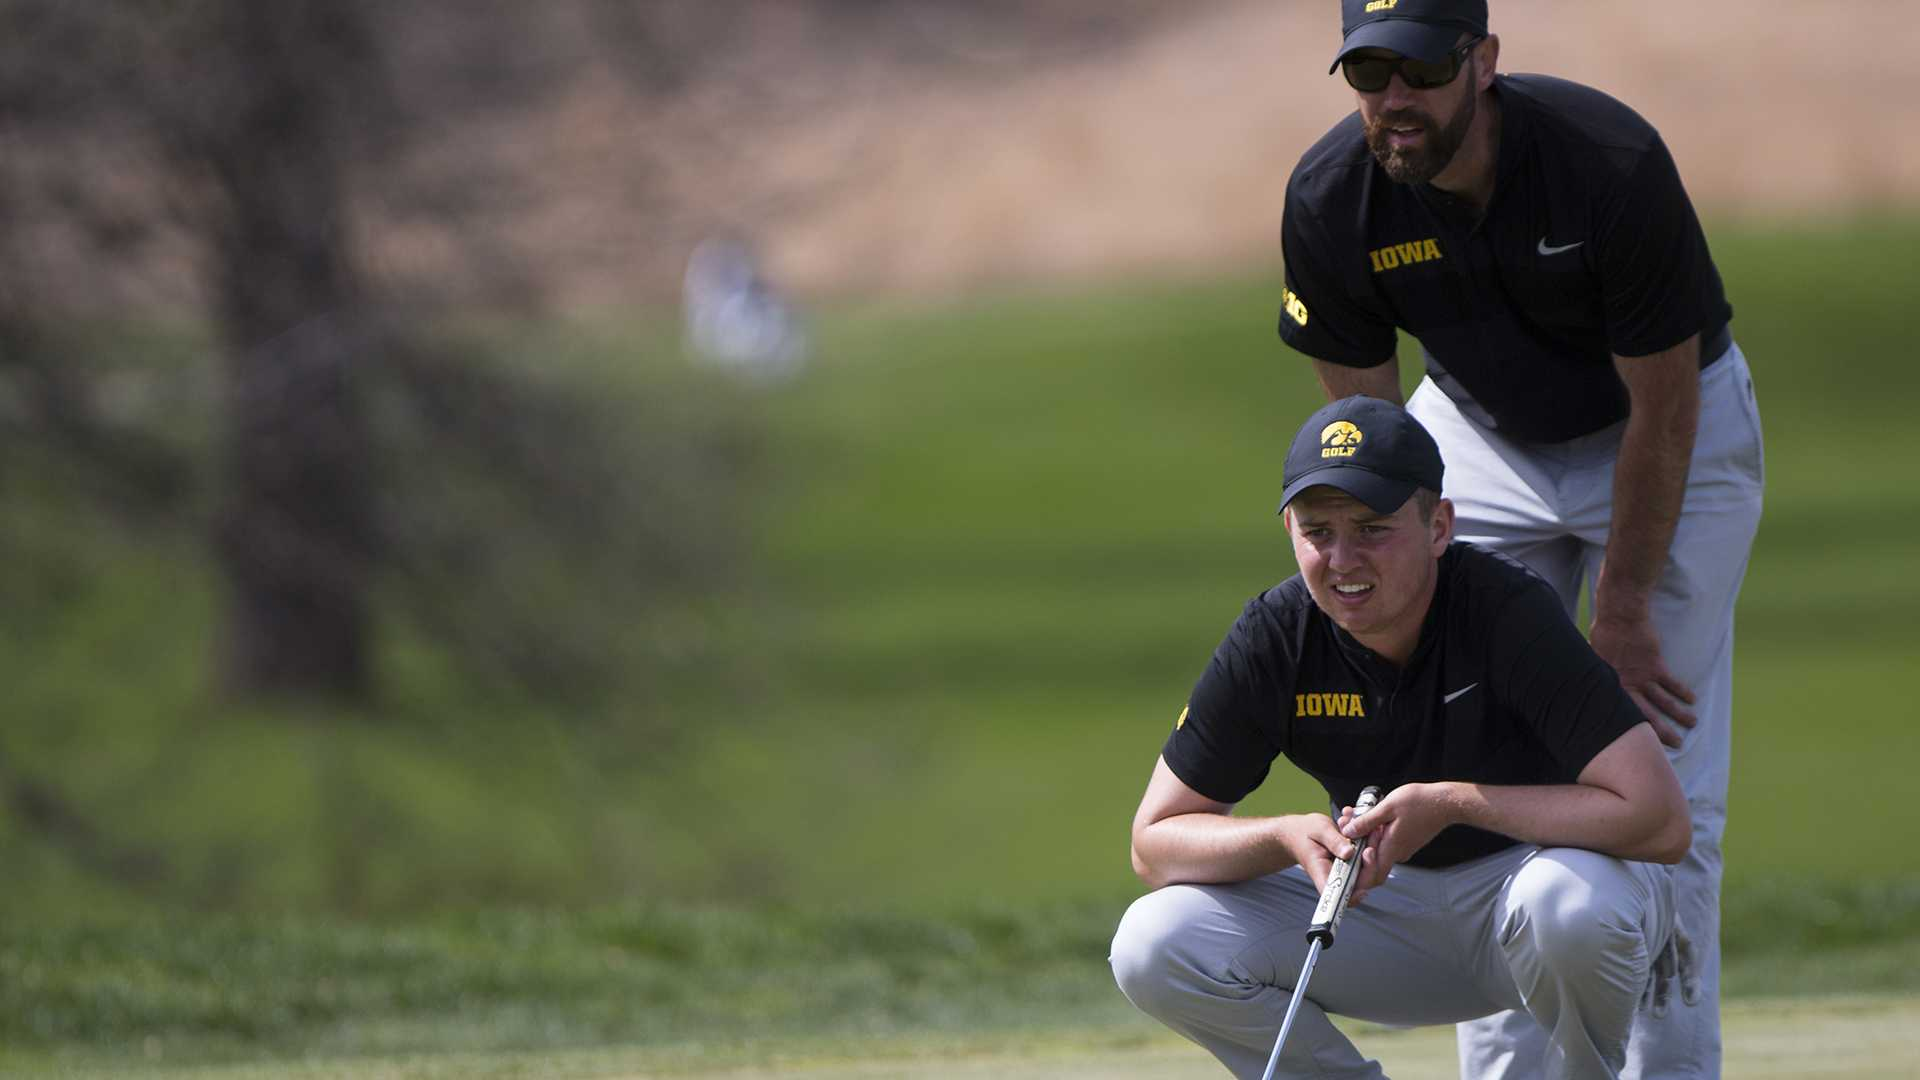 Iowa's Matthew Walker lines up a during the Hawkeye Invitational at Finkbine Golf Course on Sunday, April 16, 2017. The Hawkeyes finished second, behind Texas Tech, in the tournament after three rounds scoring 859 (-5; 289, 285, 285). (The Daily Iowan/Joseph Cress)